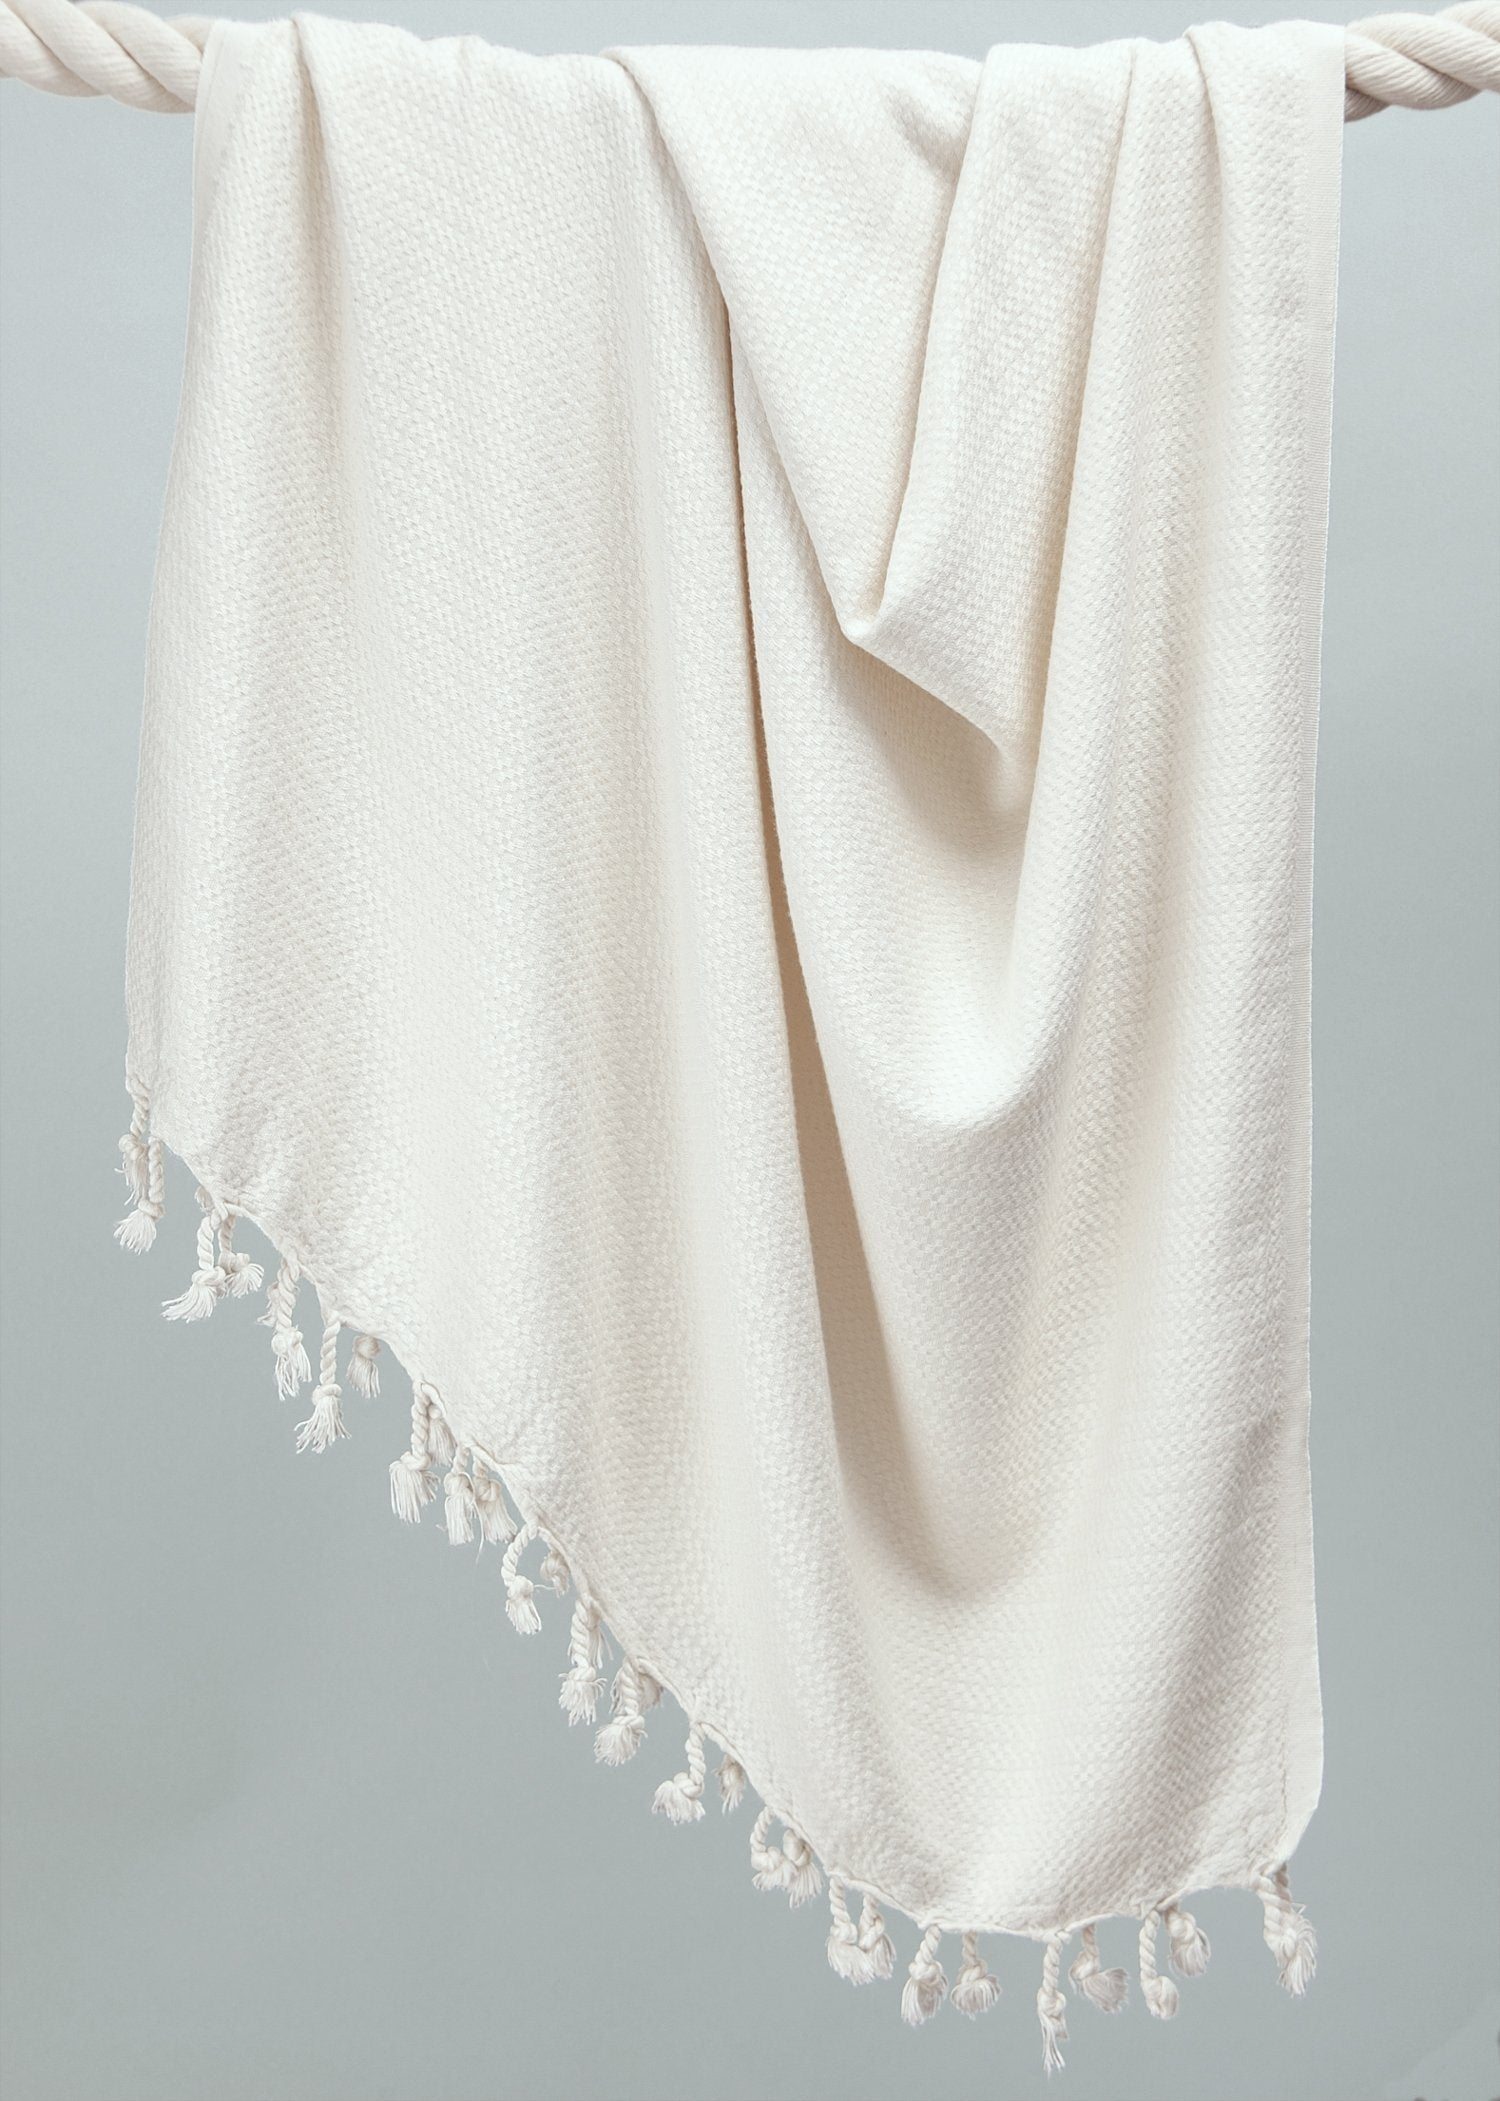 Marseille Bamboo Towel